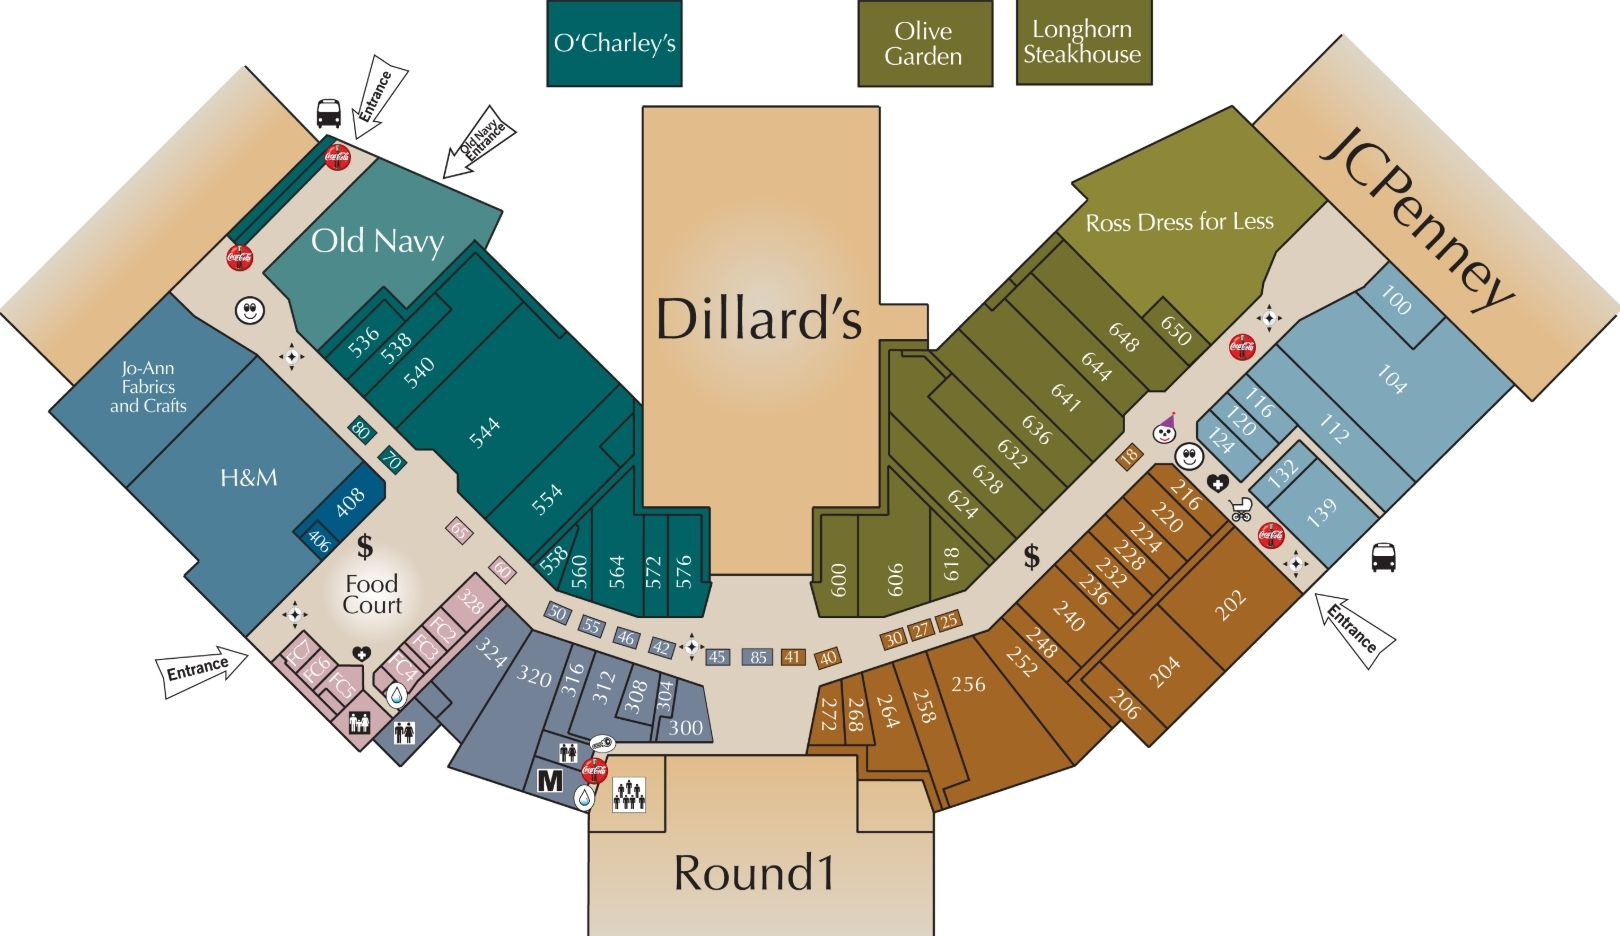 Jefferson Mall shopping plan | Mall maps in 2019 | Mall ... on weather map, park map, shopping center, shopping history, shopping malls near atlanta ga, hospital map, zoo map, residential map, shopping events, shopping malls albuquerque new mexico, shopping malls in manila philippines, shopping stores, shopping centre map, parking lot map, shopping malls singapore, shopping malls in new jersey, shopping in helena mt, store map, shopping malls usa, shopping plaza,